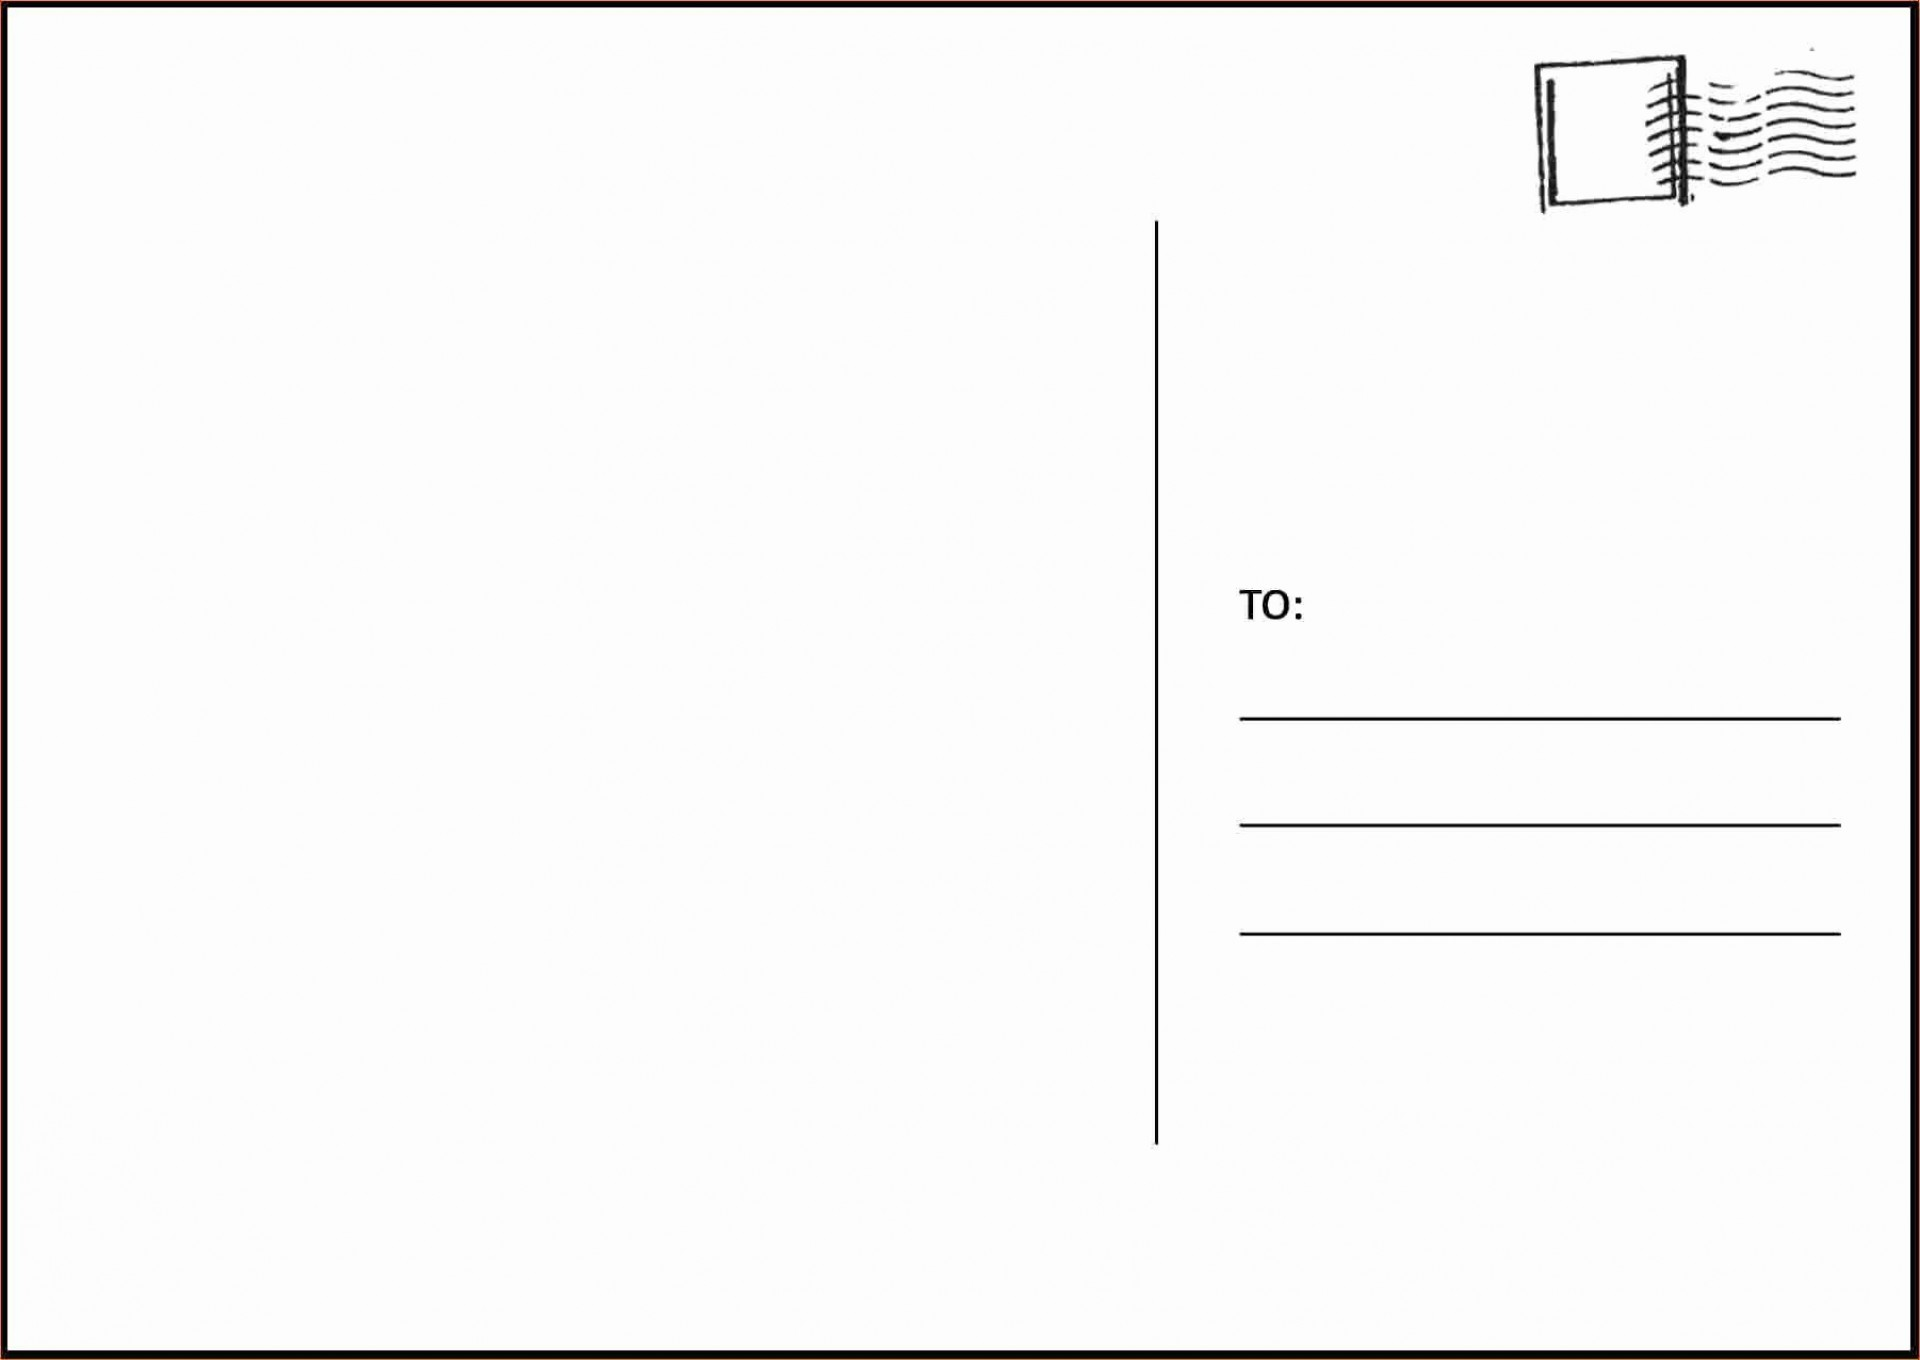 003 Unusual Free Postcard Template Download Microsoft Word Highest Quality 1920